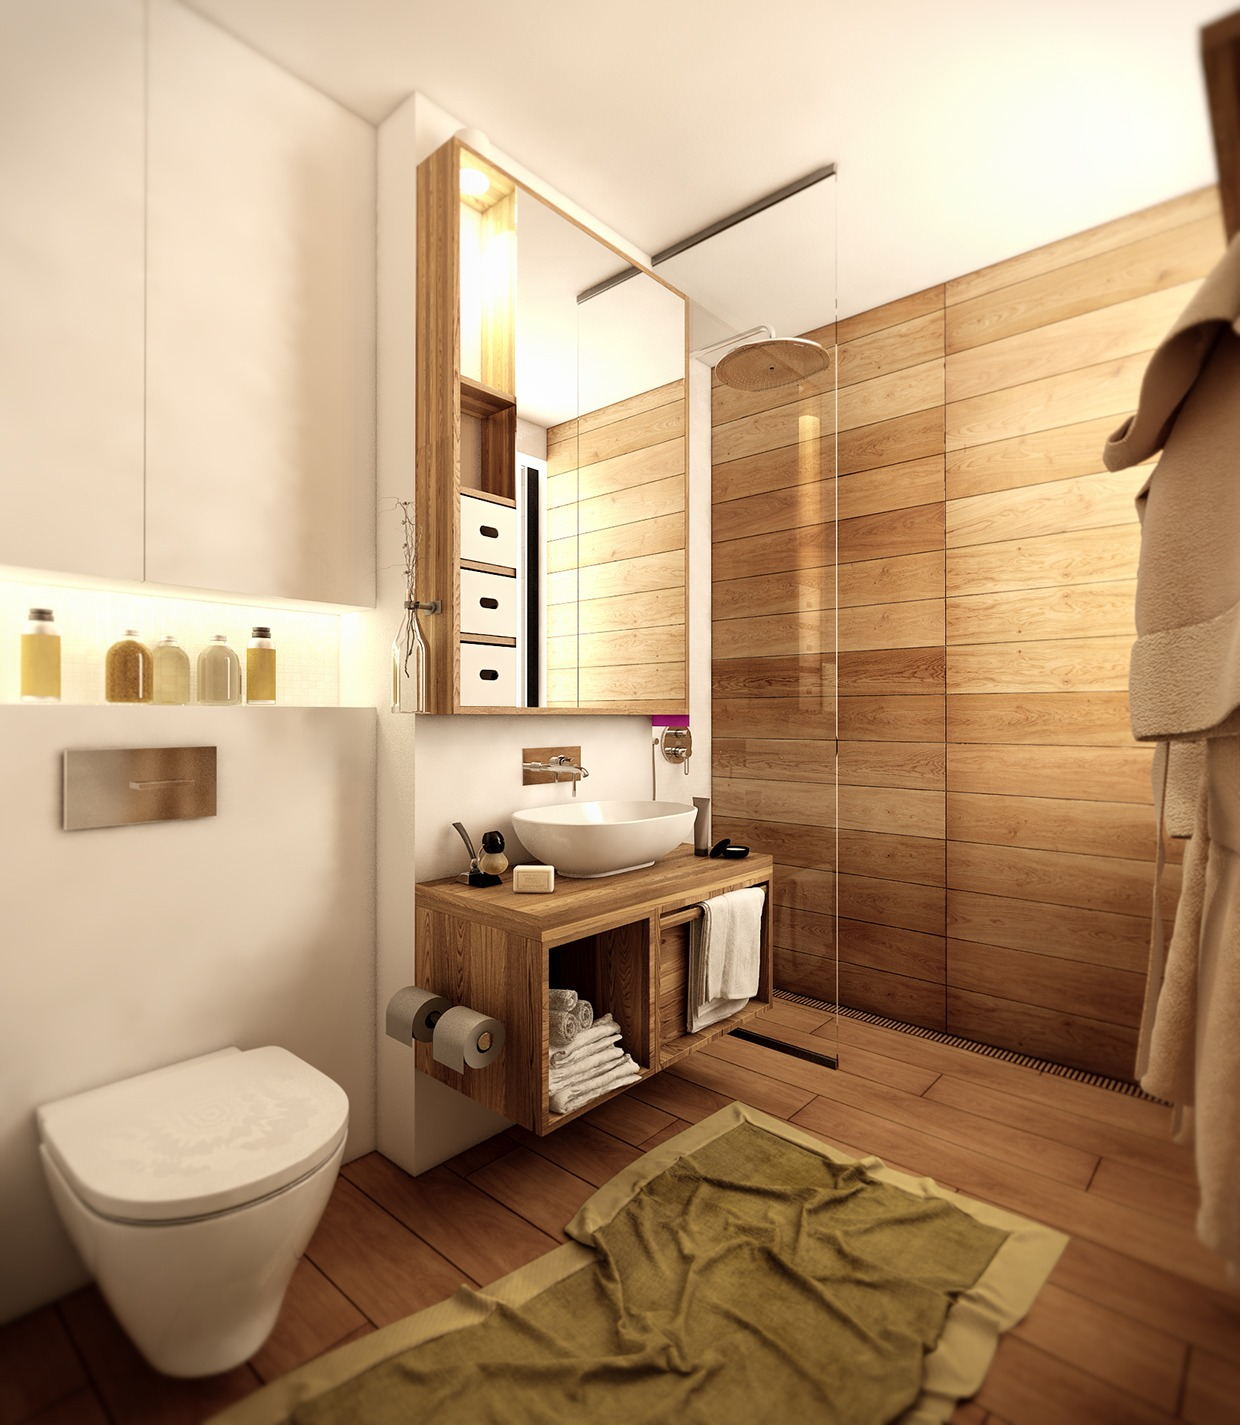 Wood floor bathroom interior design ideas for Bathroom interior design tips and ideas